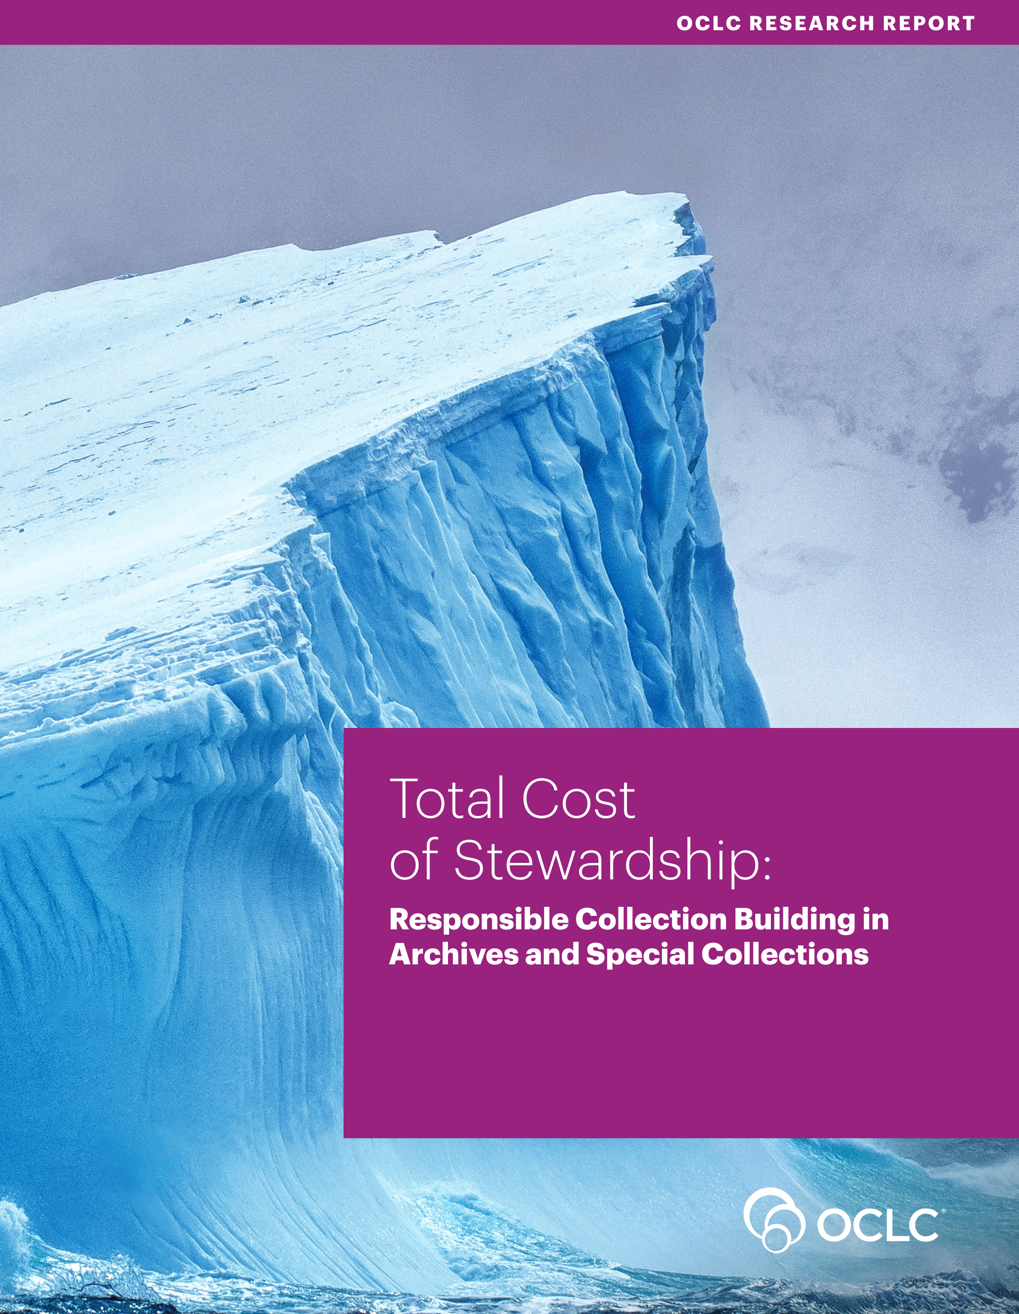 An image of the report's cover that has a large iceberg with waves crashing against it, along with the report's title.